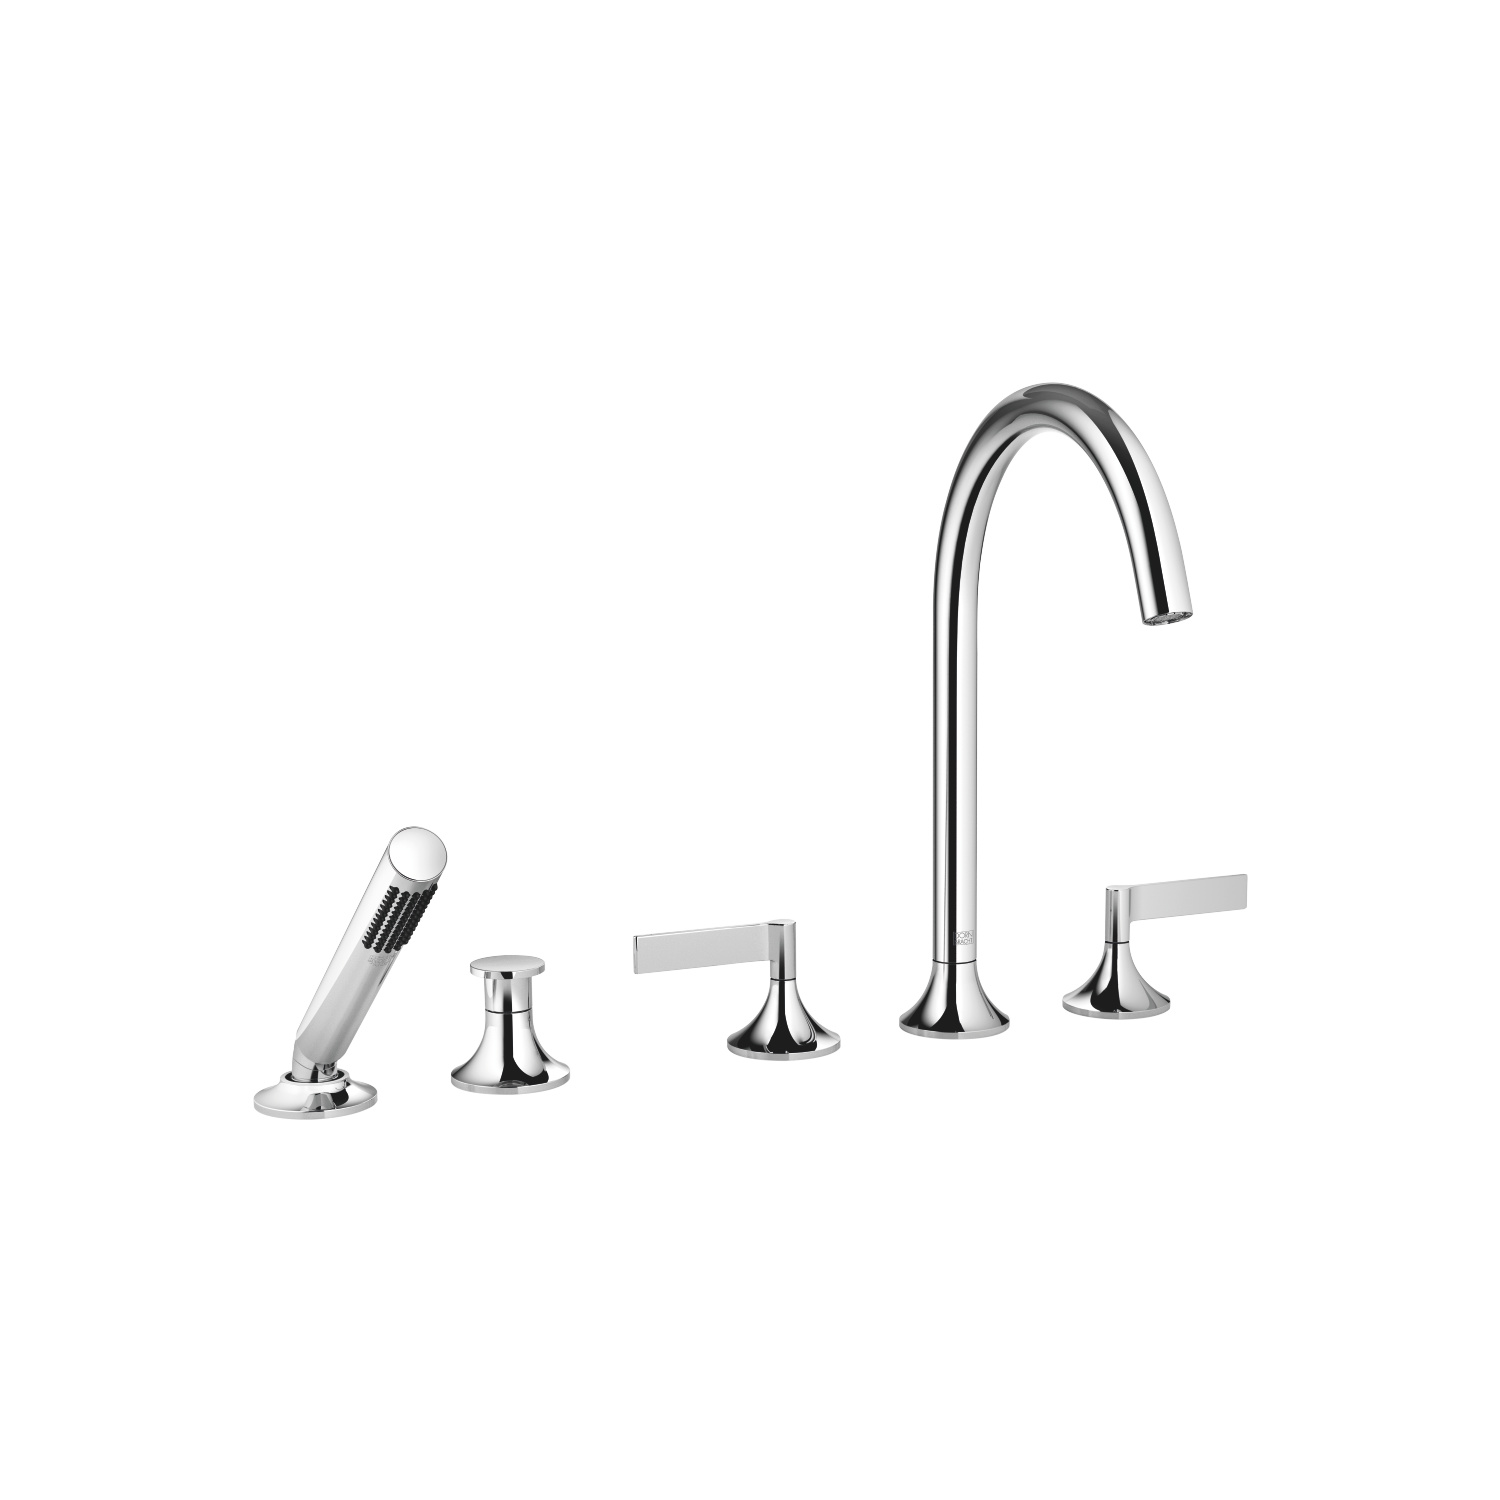 Five-hole bath mixer for deck mounting with diverter - polished chrome - 27 522 819-00